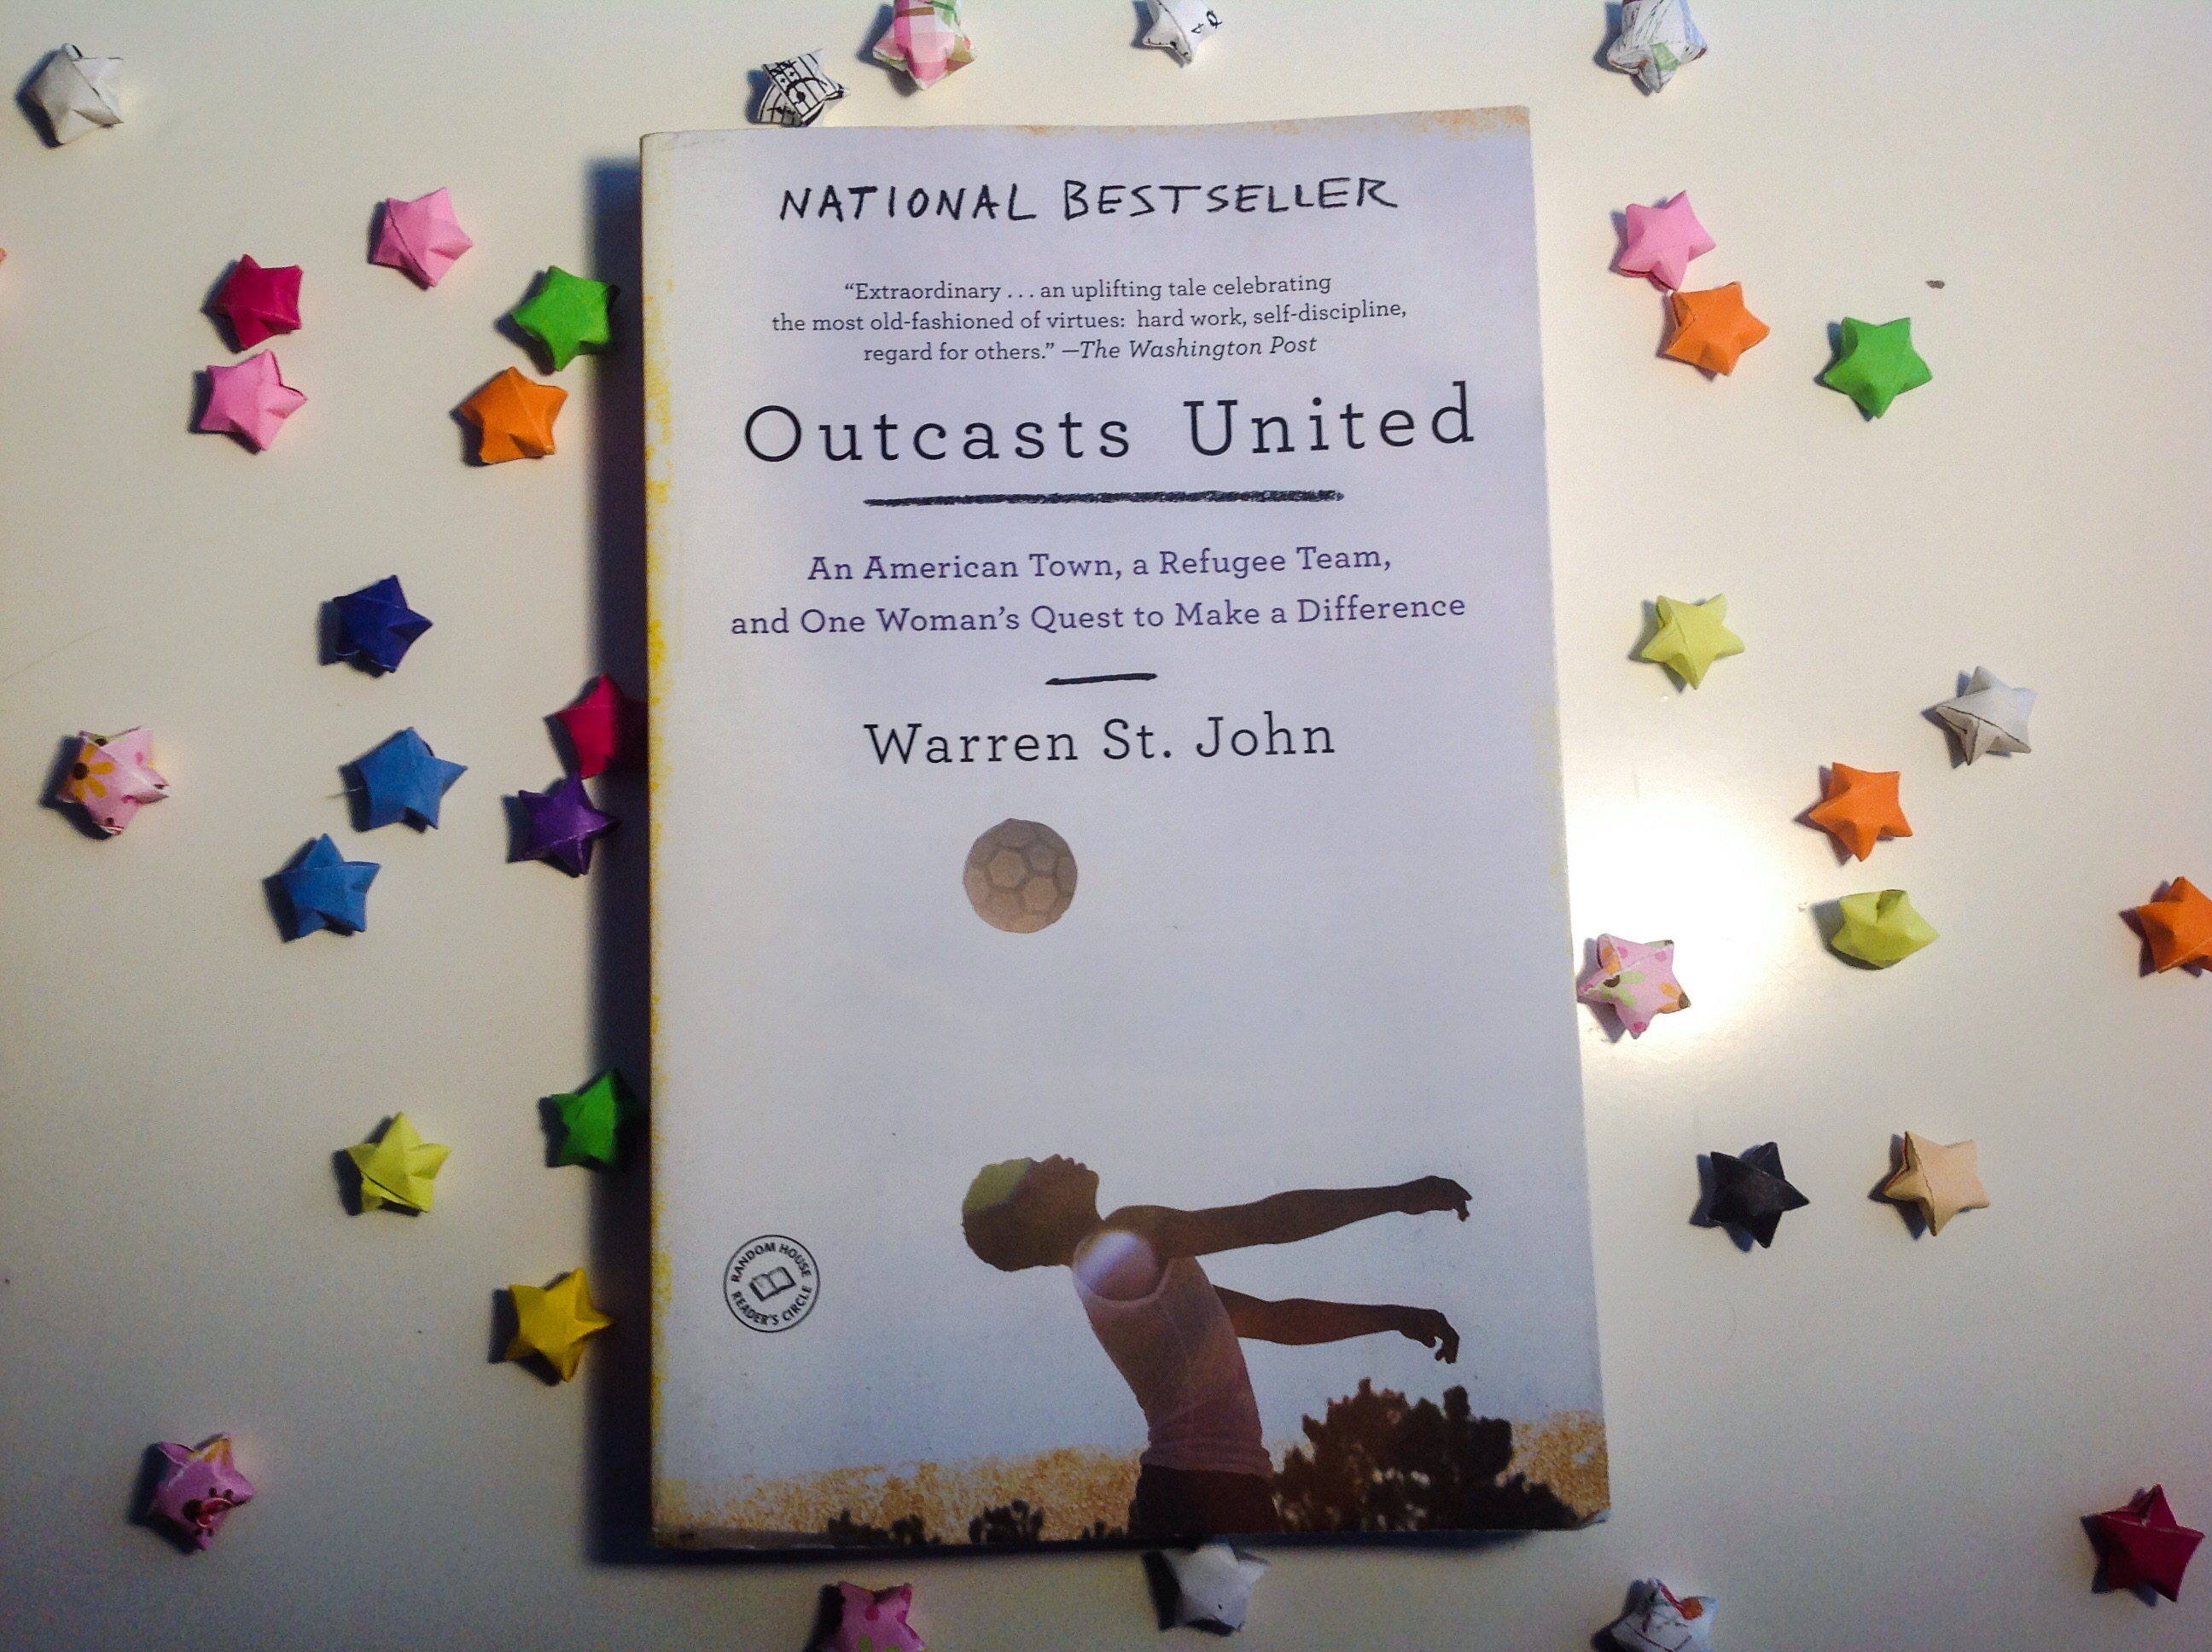 a review of outcasts united the Find helpful customer reviews and review ratings for outcasts united: the story of a refugee soccer team that changed a town at amazoncom read honest and unbiased product reviews from our users.